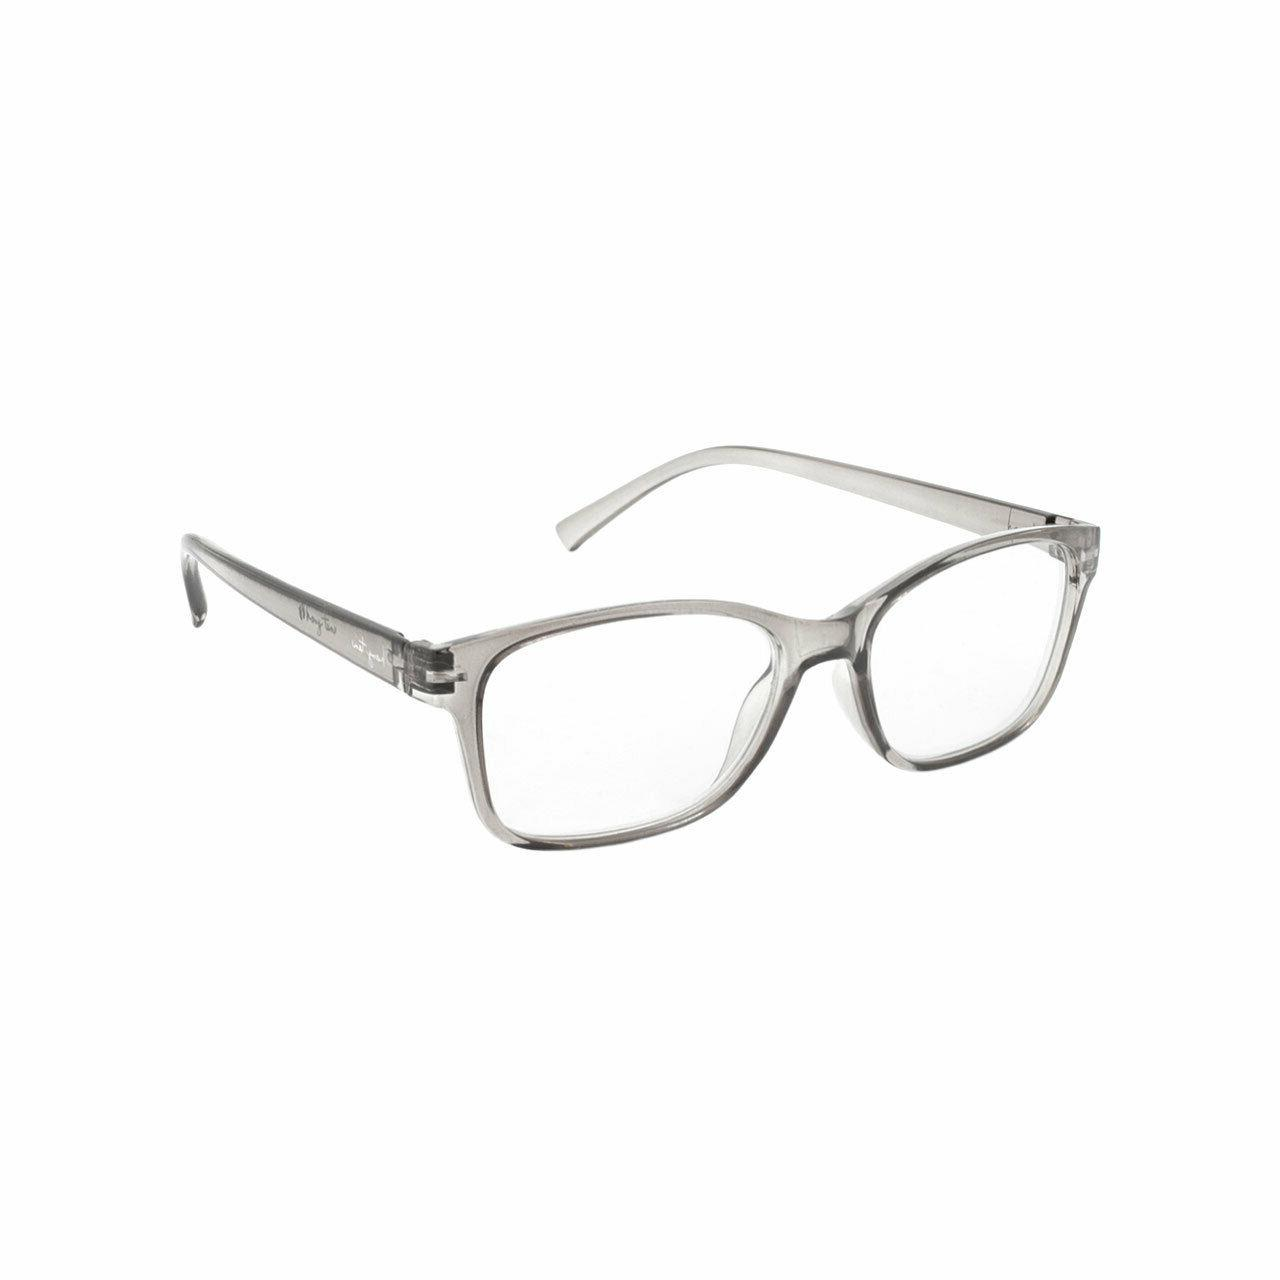 READING MENS 4 PAIR UNISEX QUALITY STYLE READERS BRANDED NEW